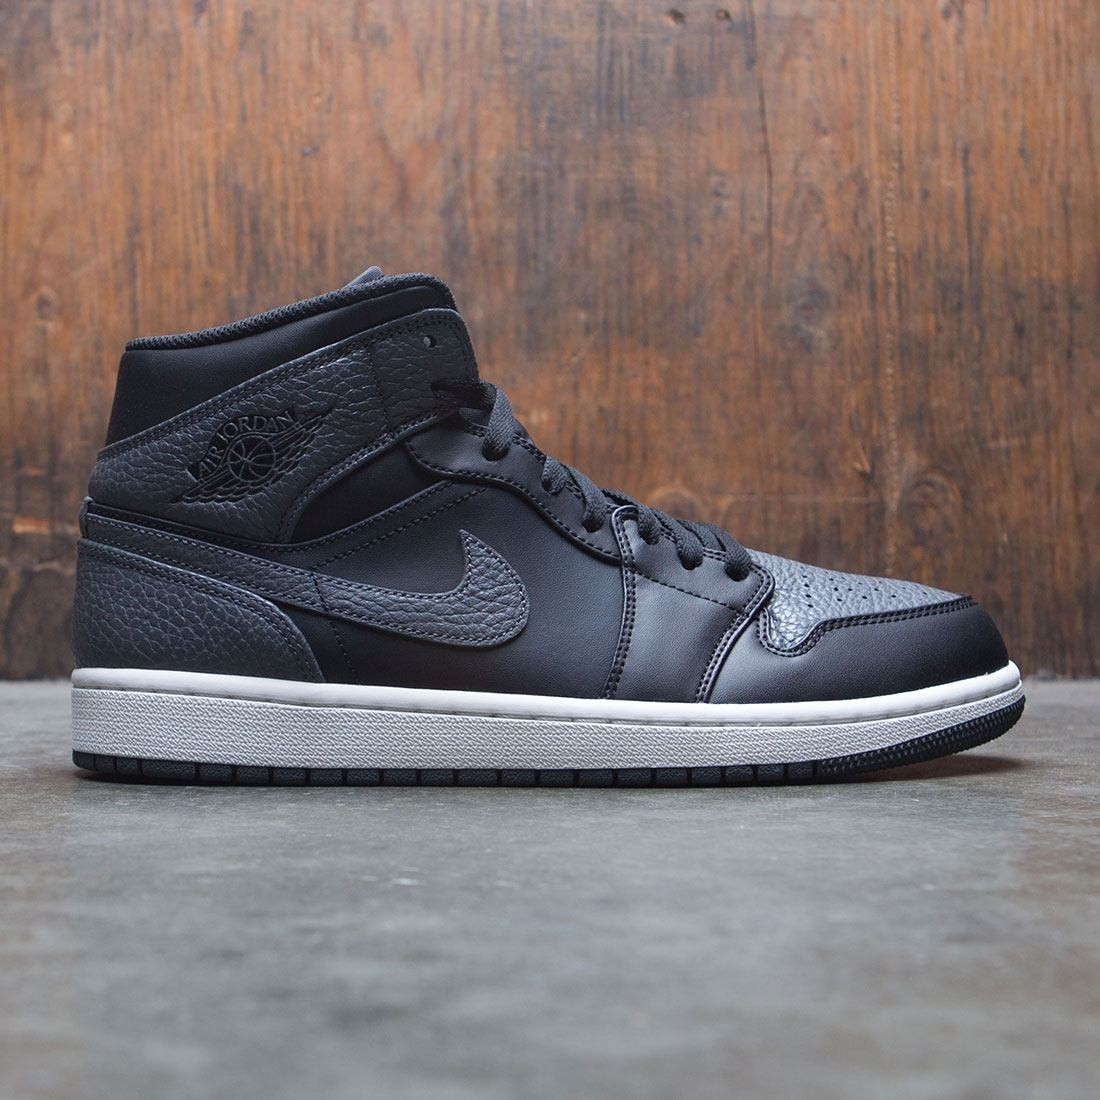 new style 38bf9 c2faa jordan men air jordan 1 mid black dark grey summit white